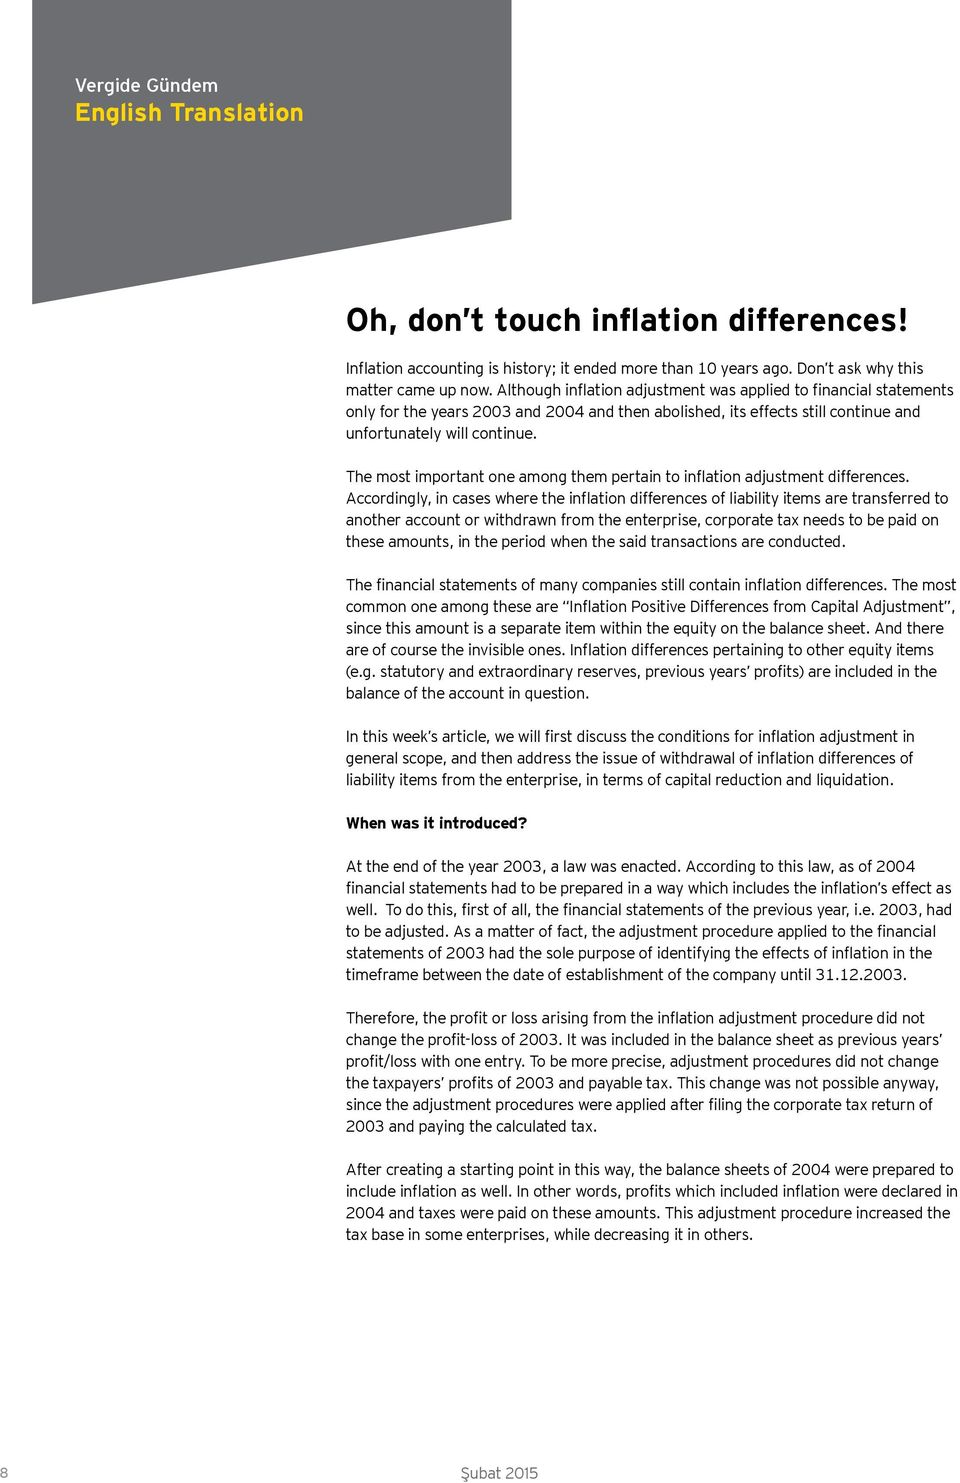 The most important one among them pertain to inflation adjustment differences.